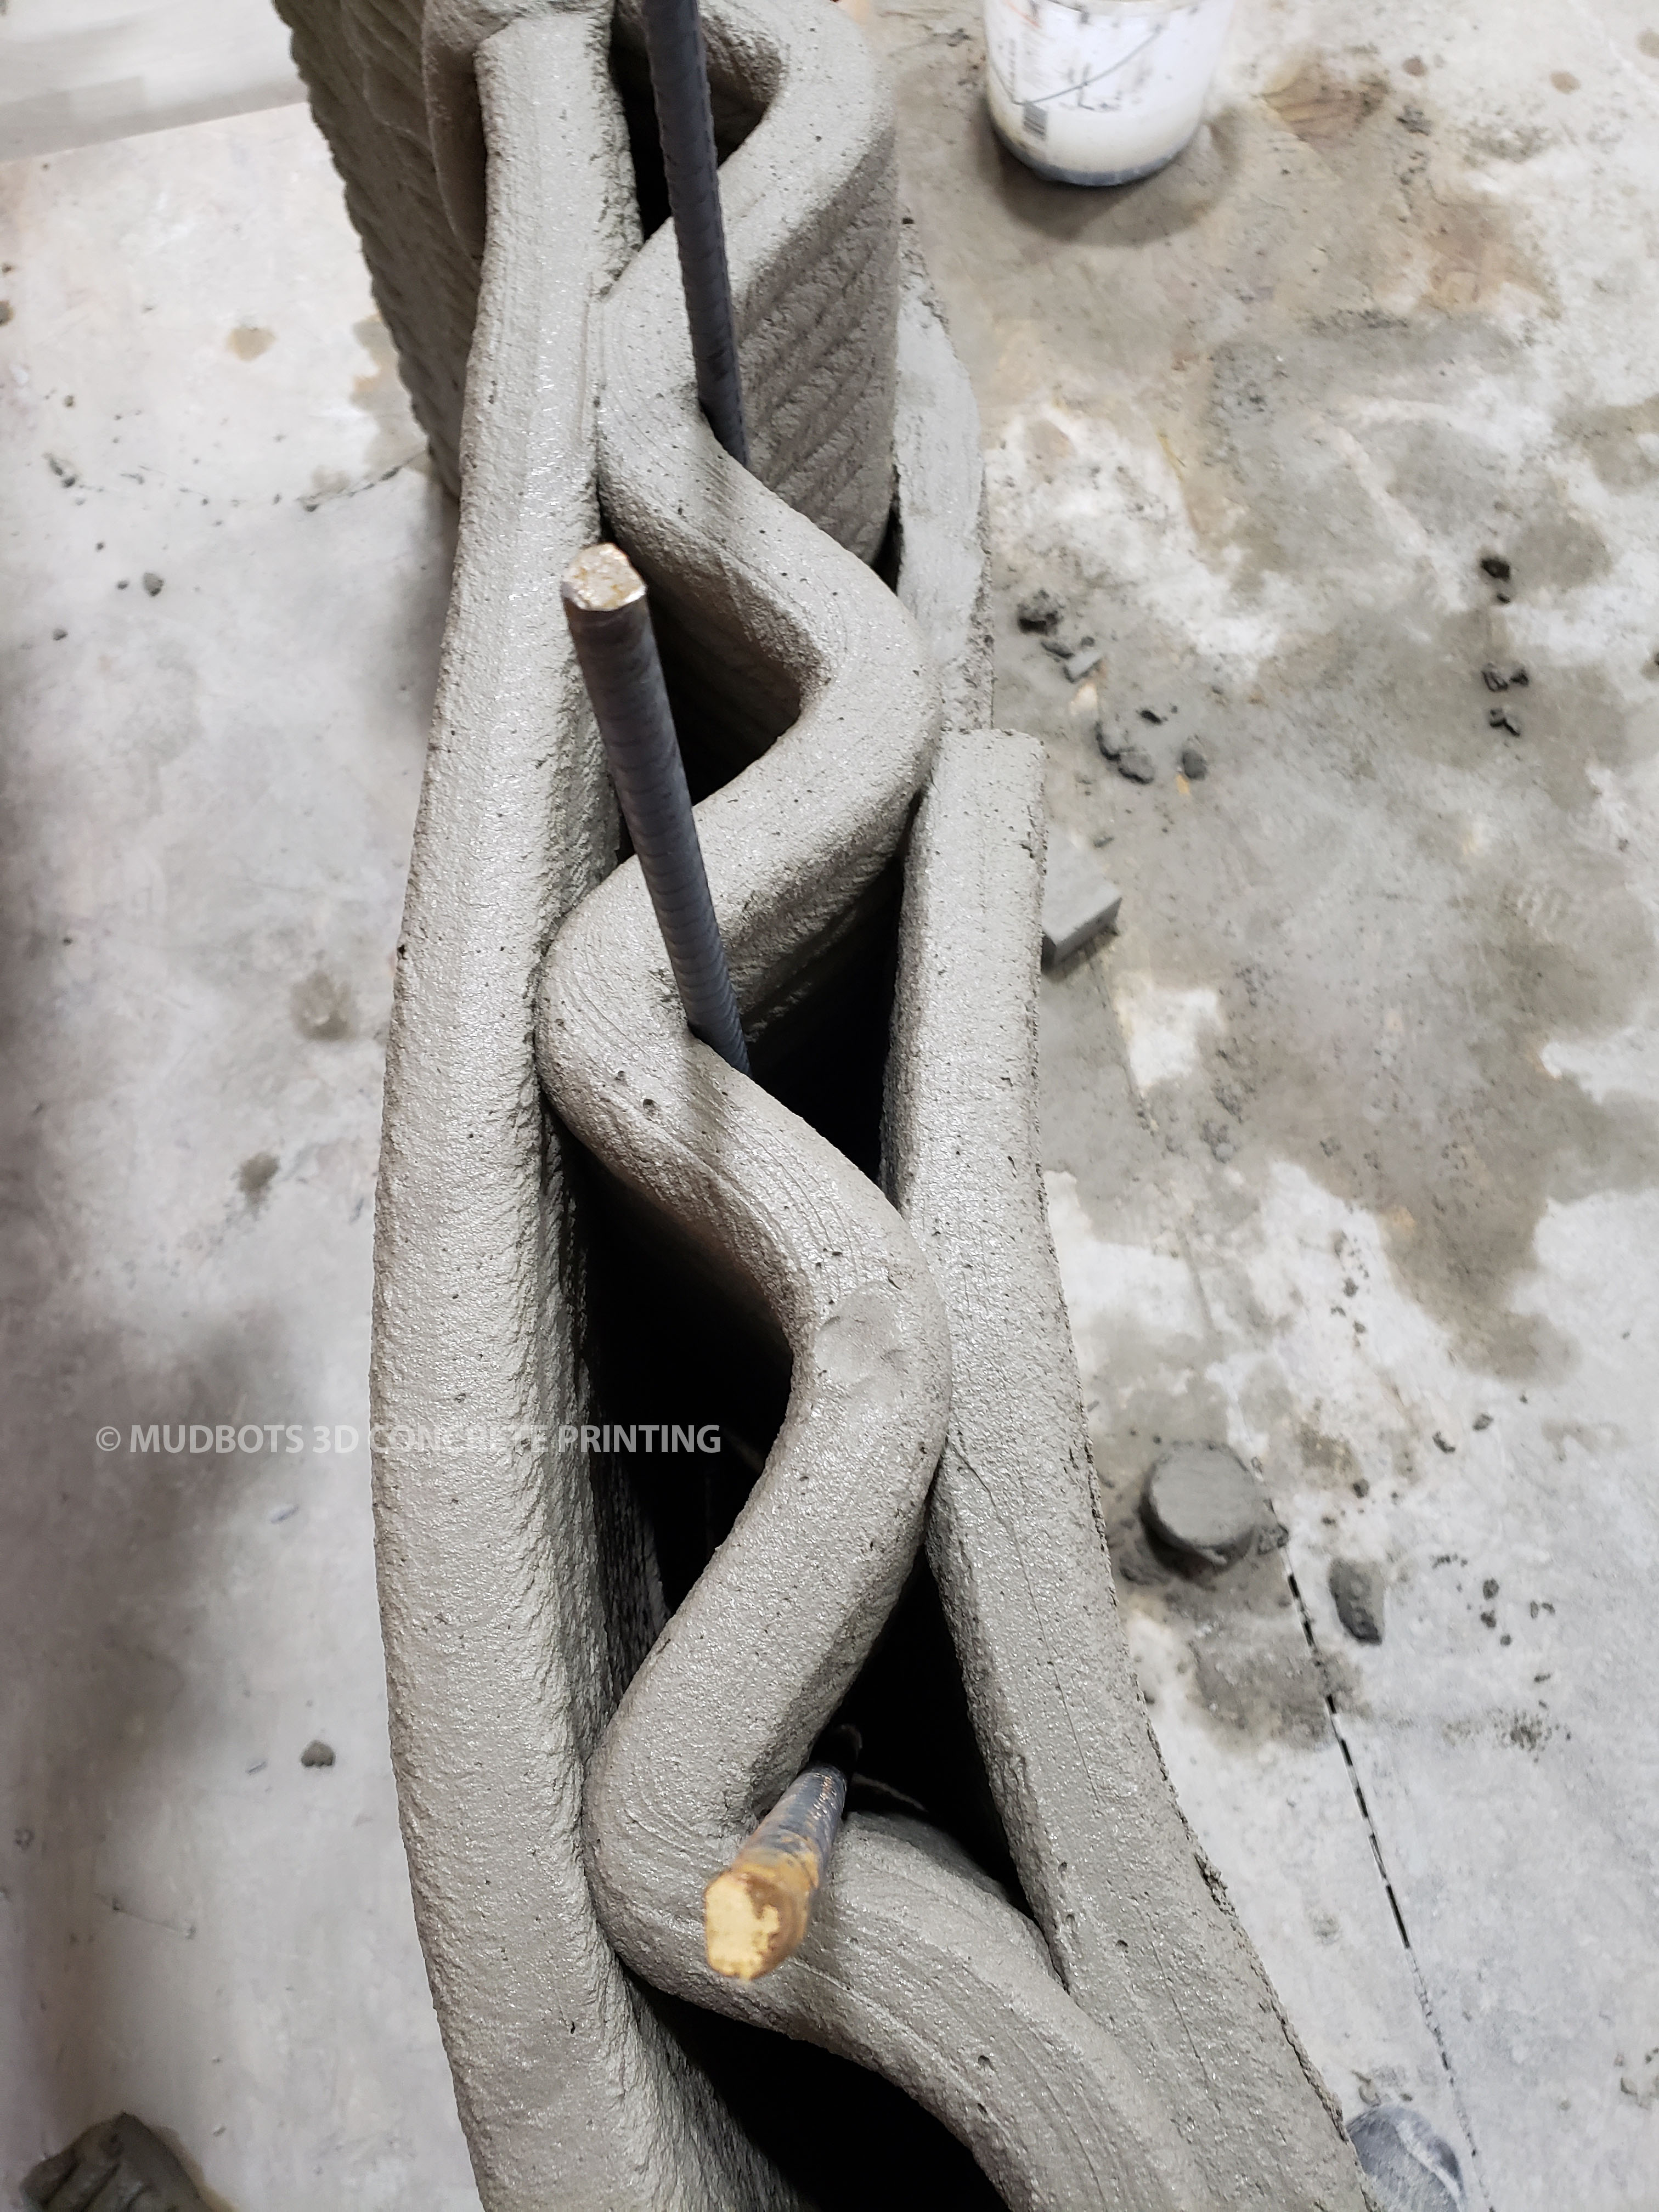 Top view of 3D printing concrete around rebars for a stronger foundation.